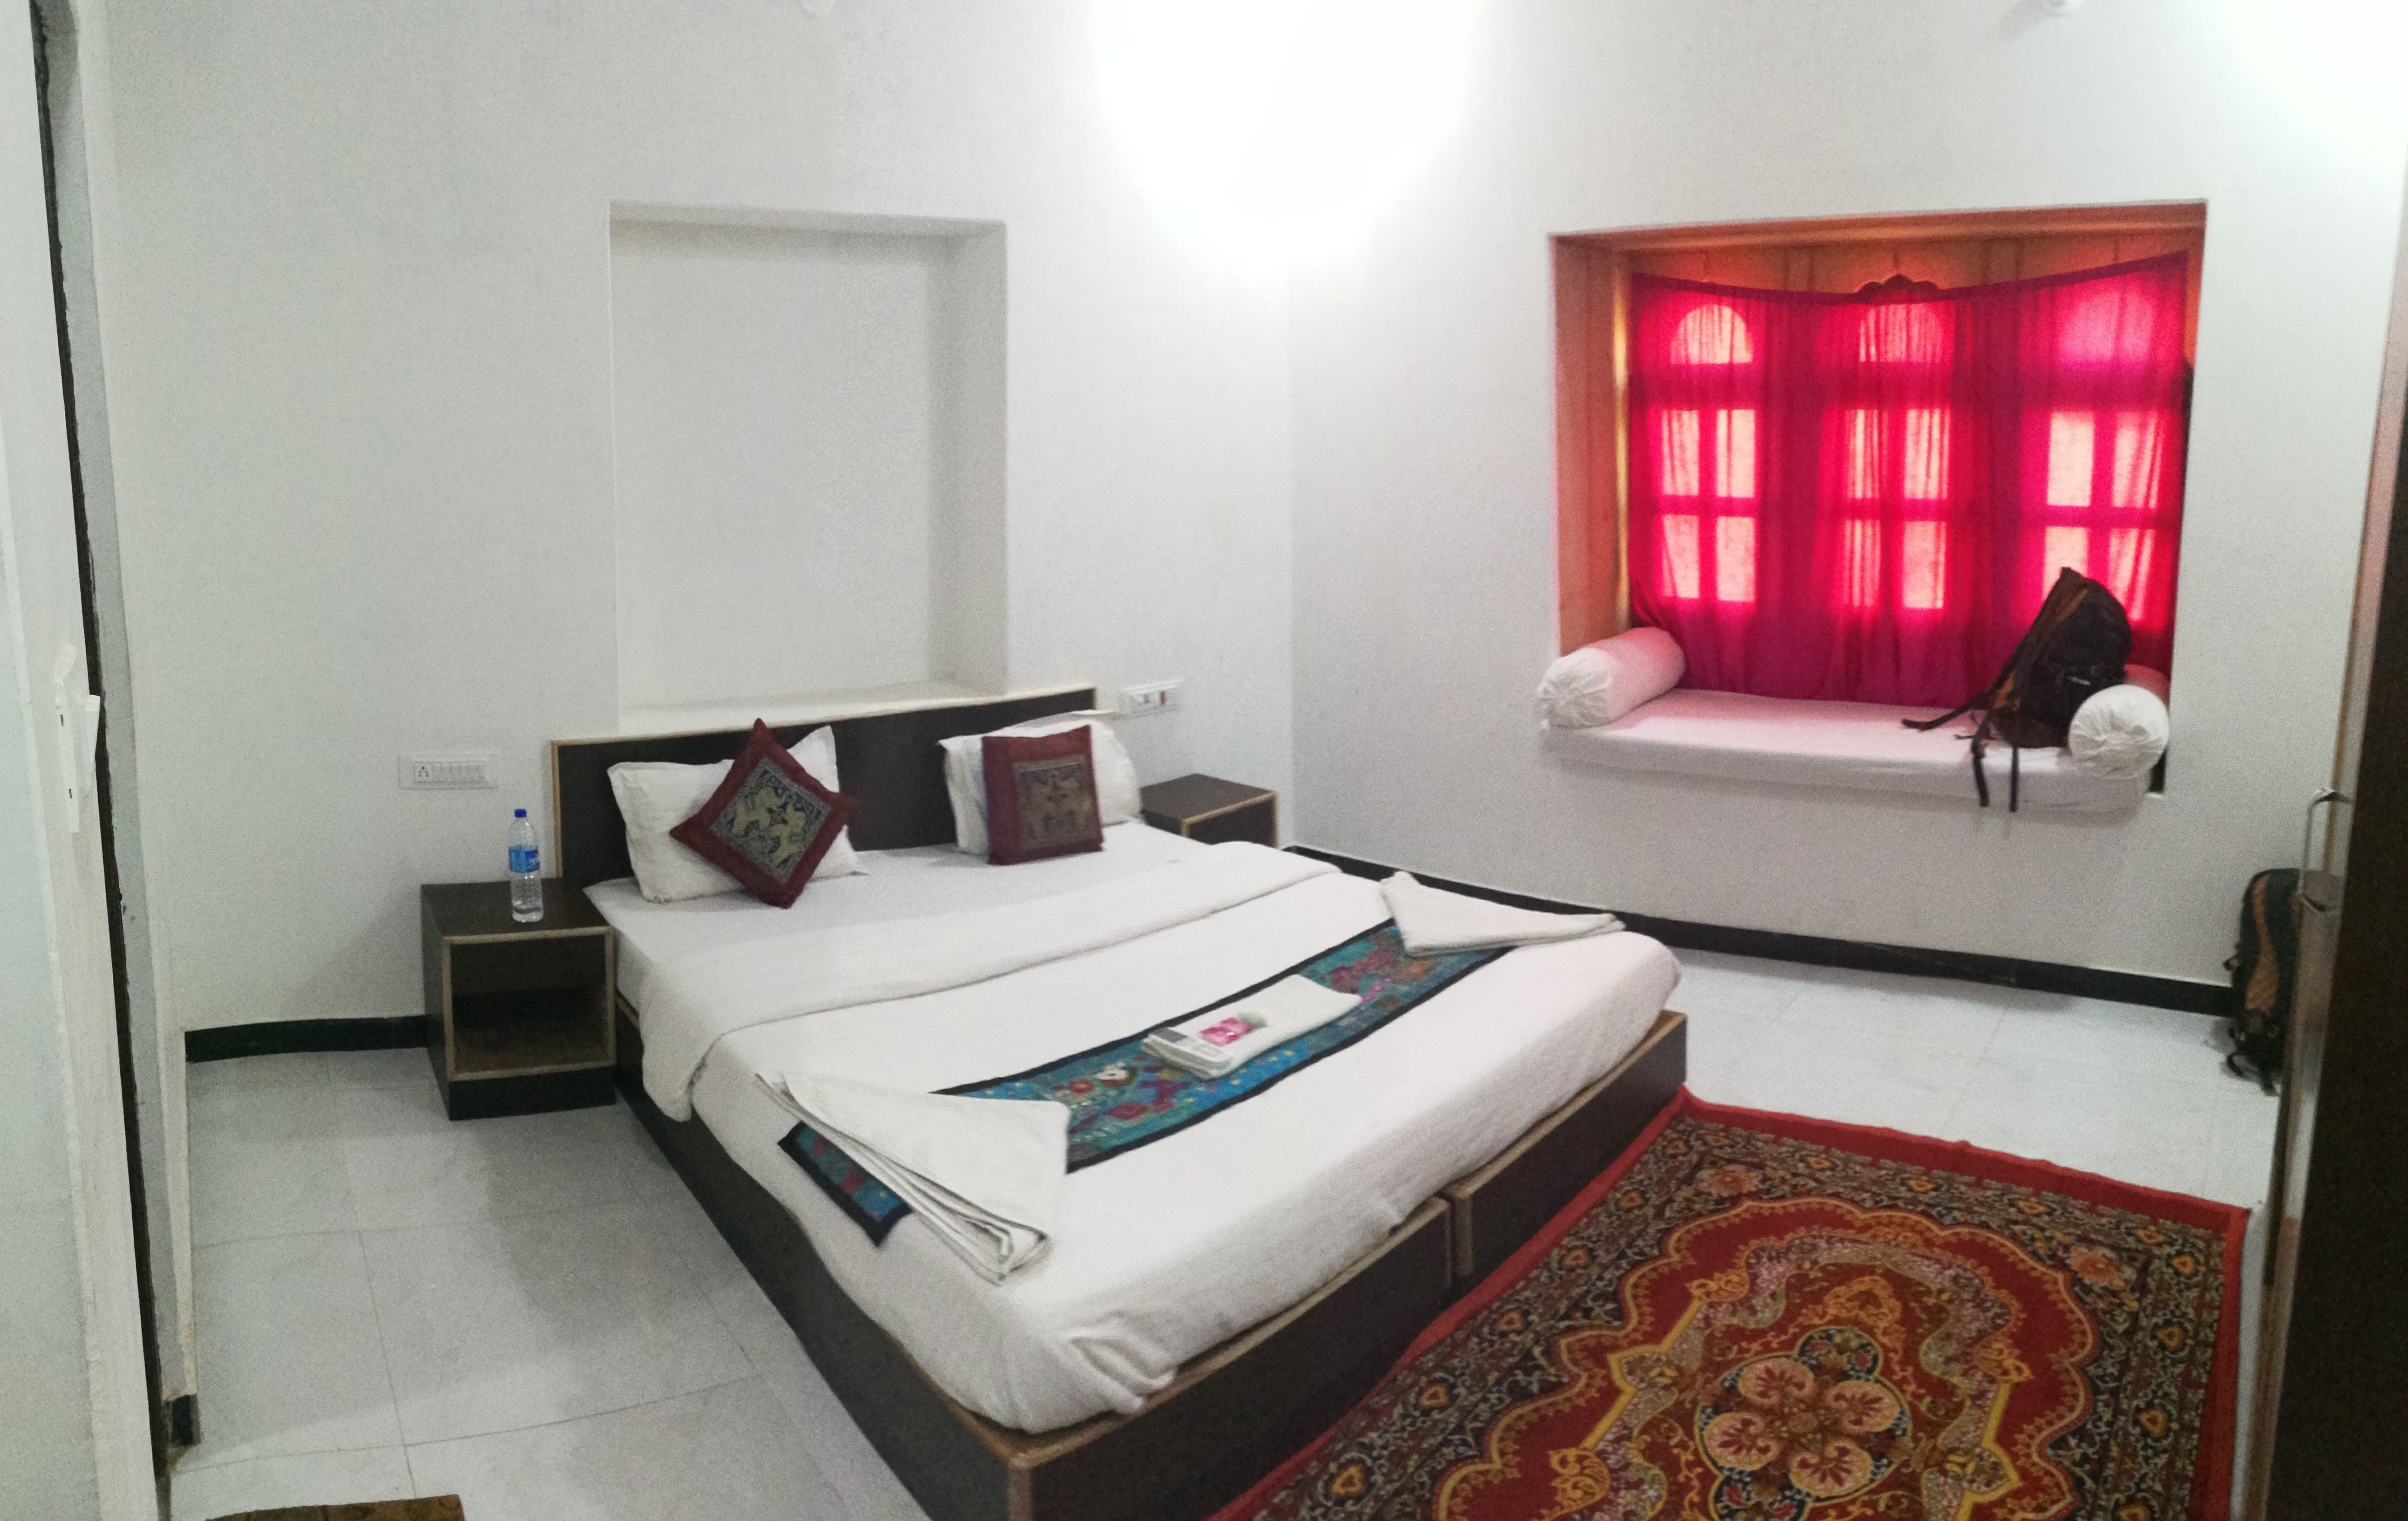 Accommodation Jaisalmer